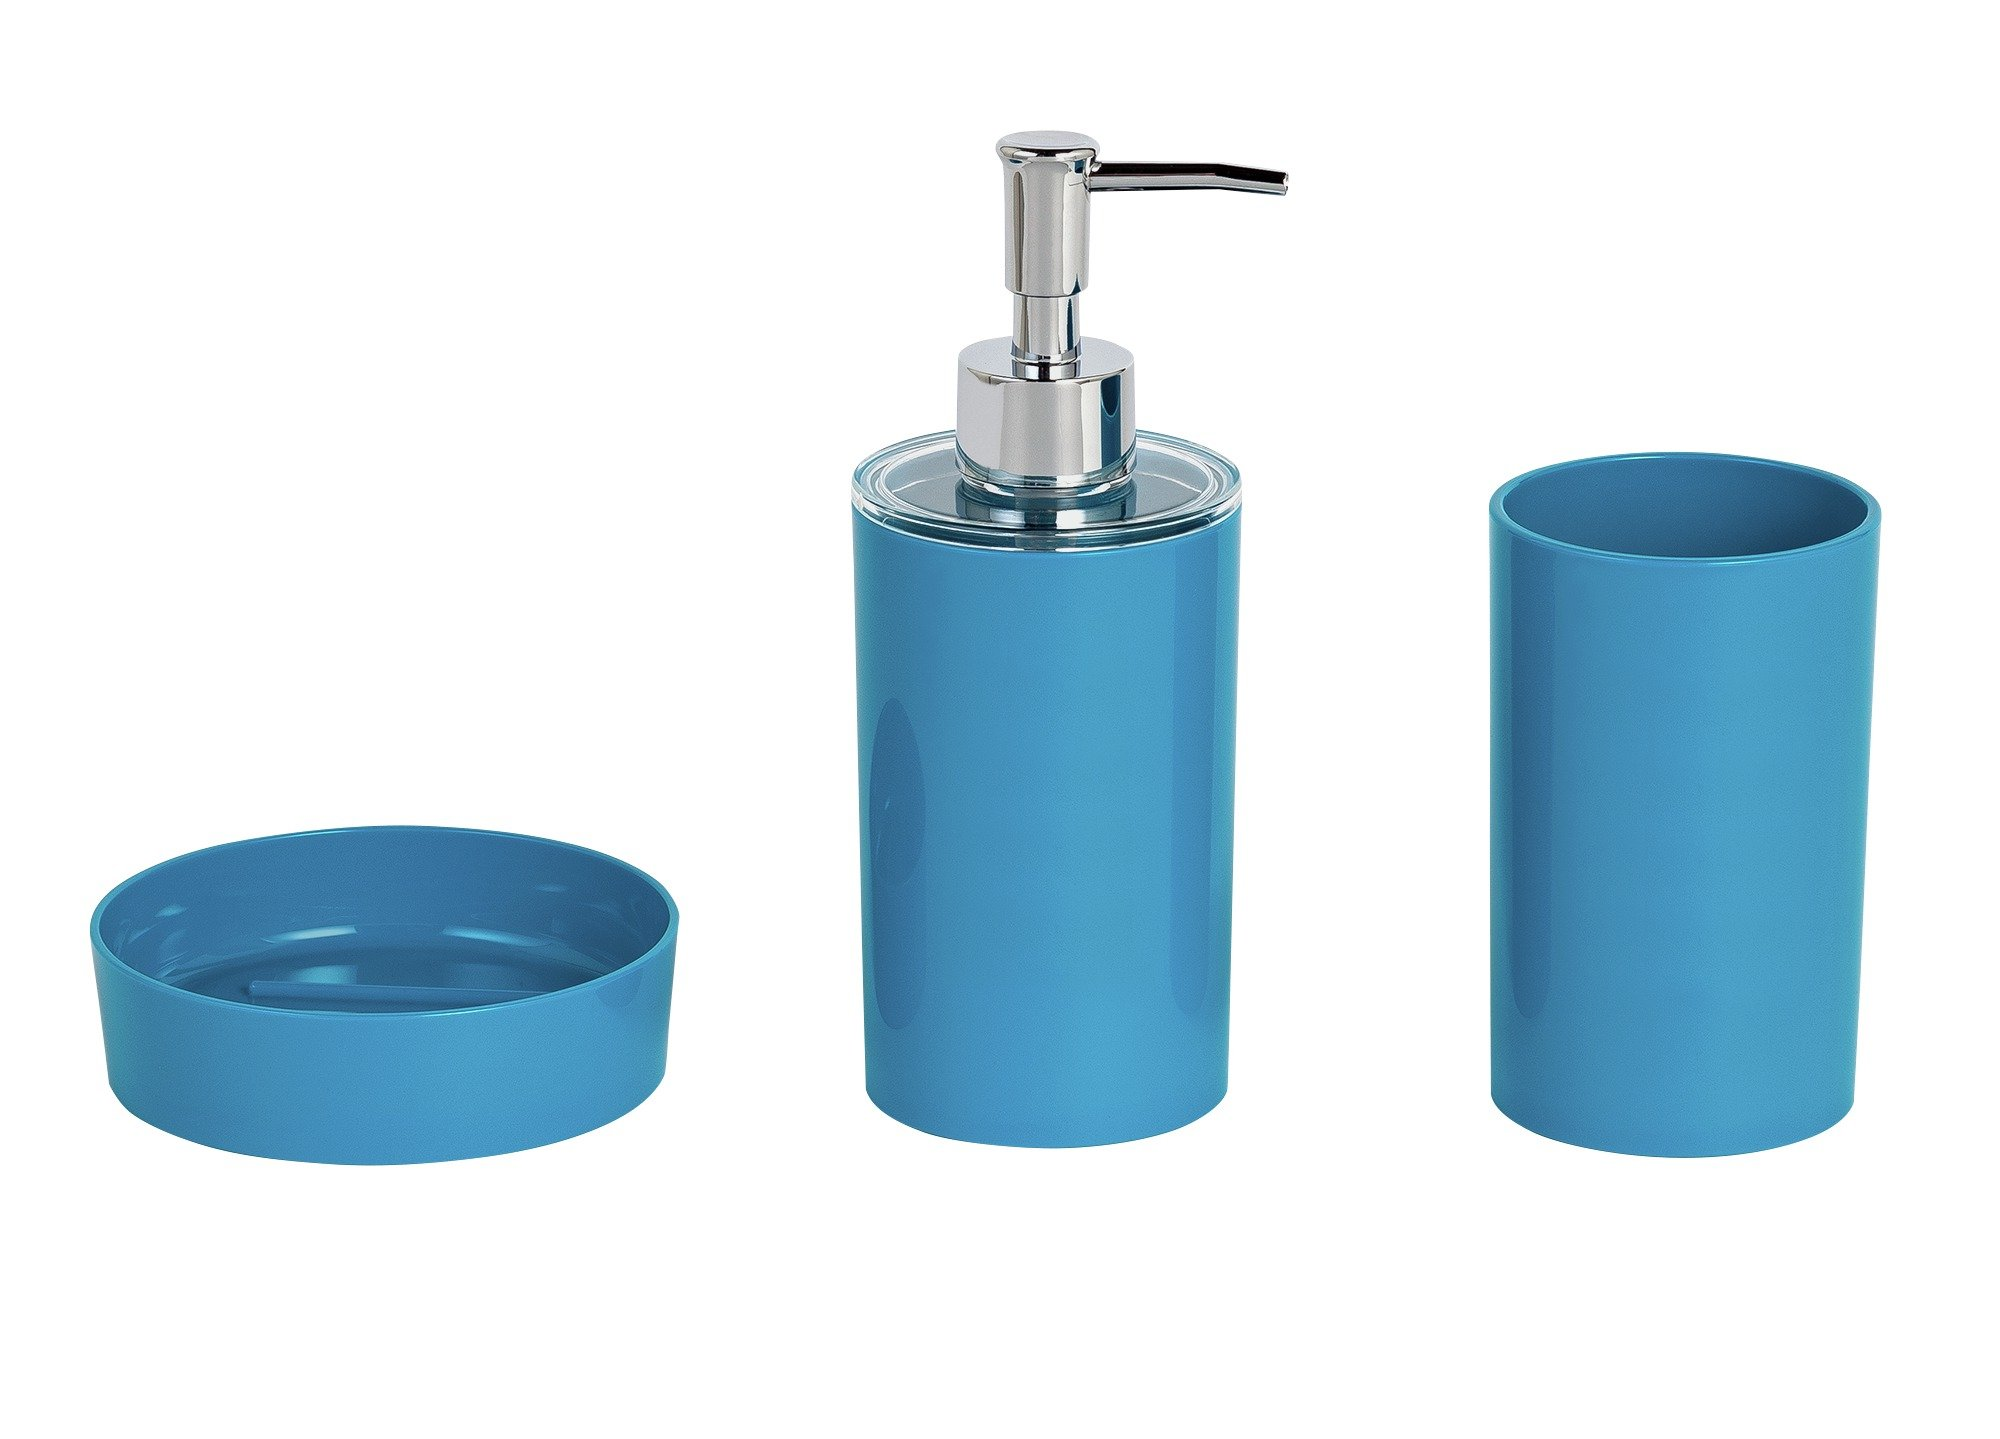 Colourmatch 3 piece bathroom accessory set teal 7036723 for Teal bathroom accessories sets